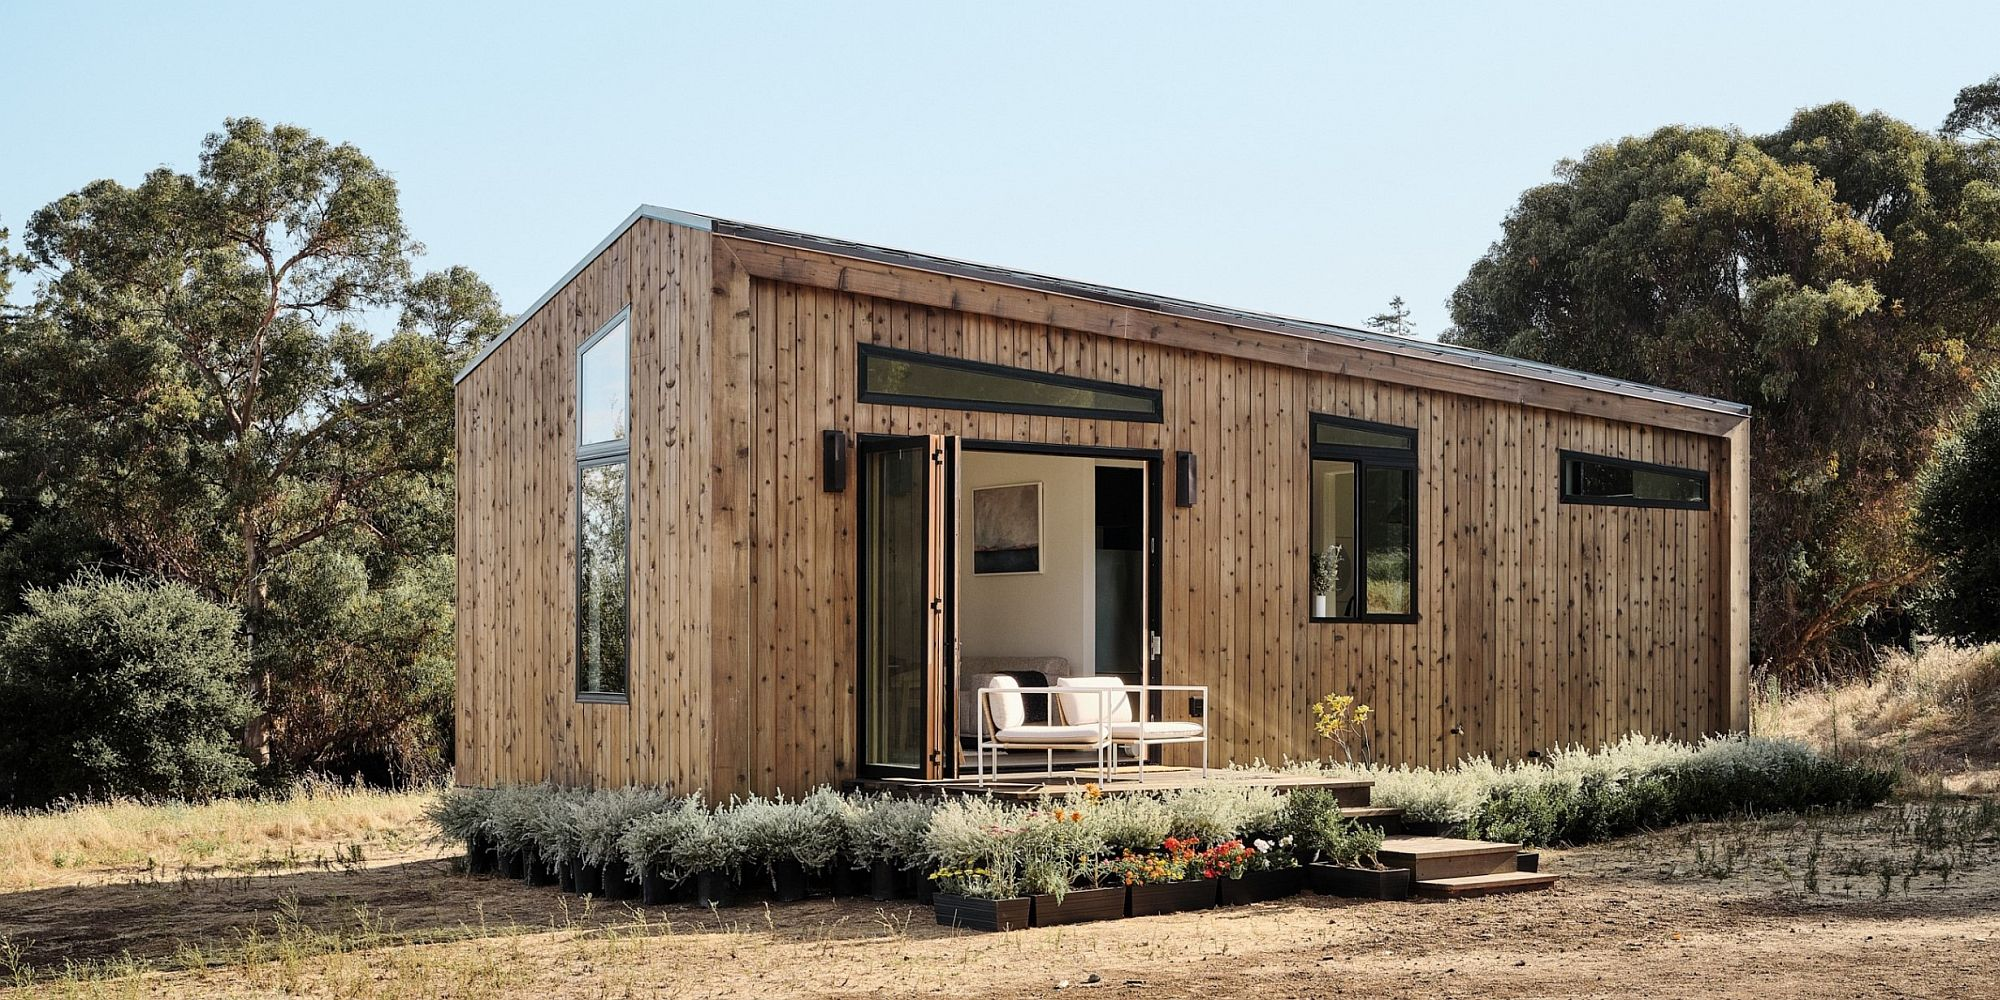 Simple-and-elegant-tiny-house-design-that-saves-space-and-budget